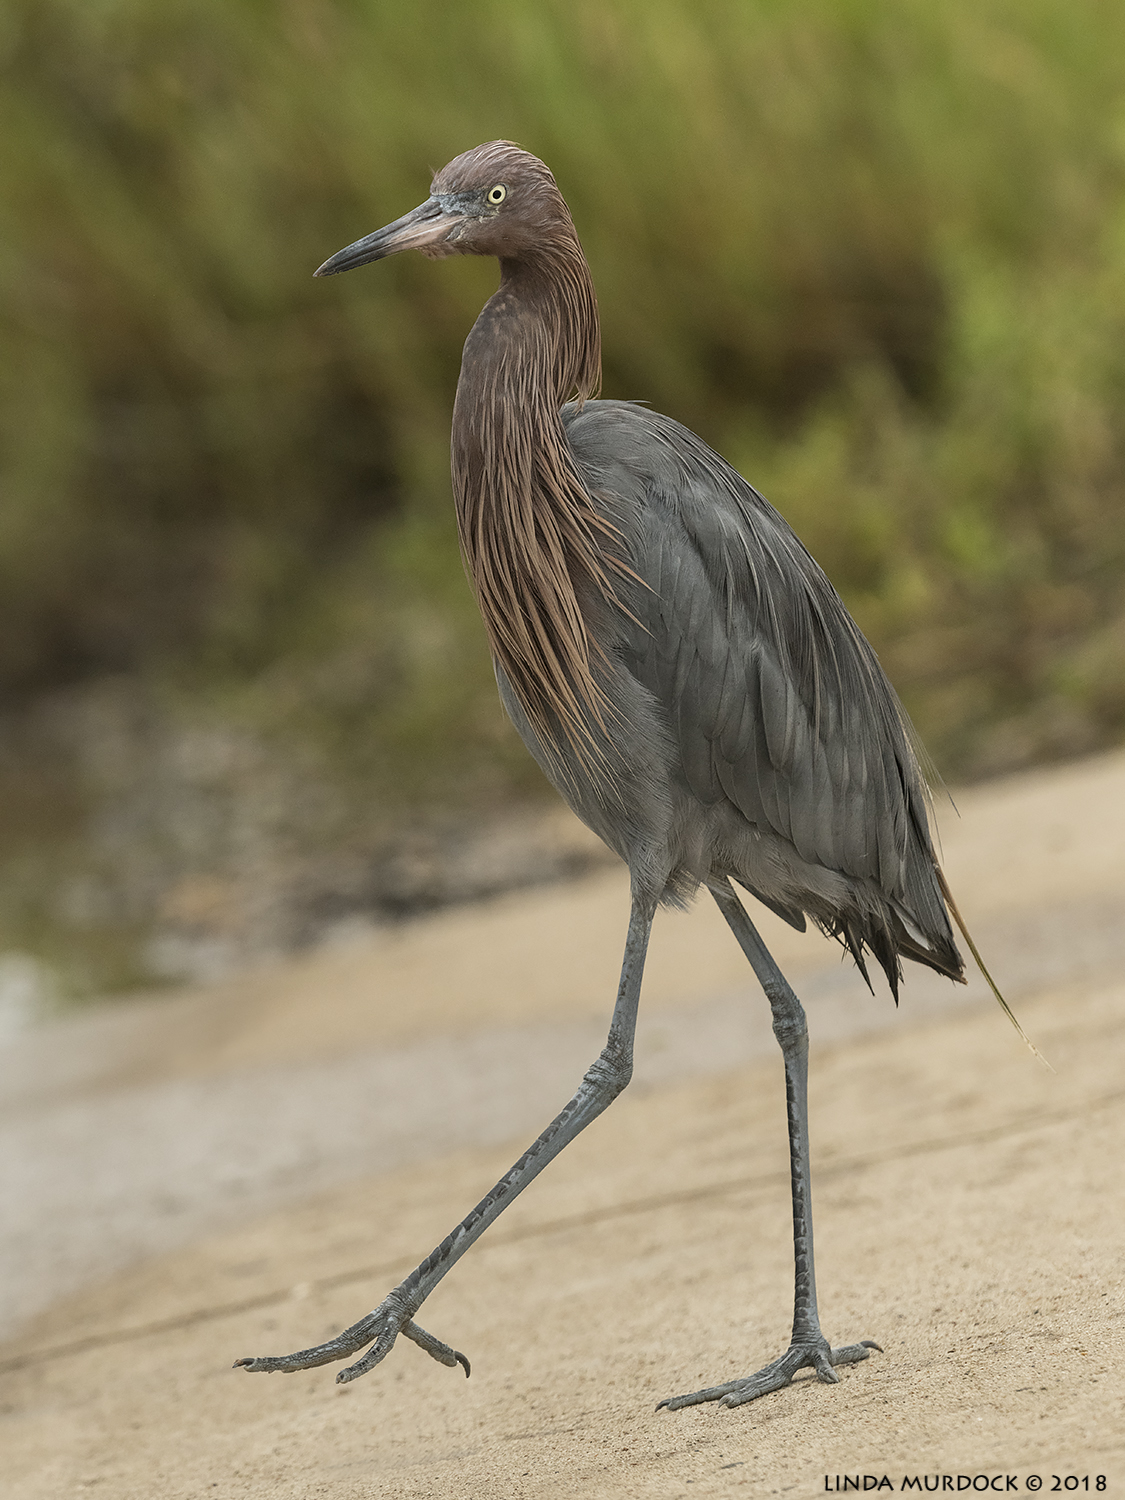 Reddish Egret strutting around…  Nikon D850 with NIKKOR 500mm f/4E VR ~ 1/2000 sec f/7.1 ISO 1600; hand-held